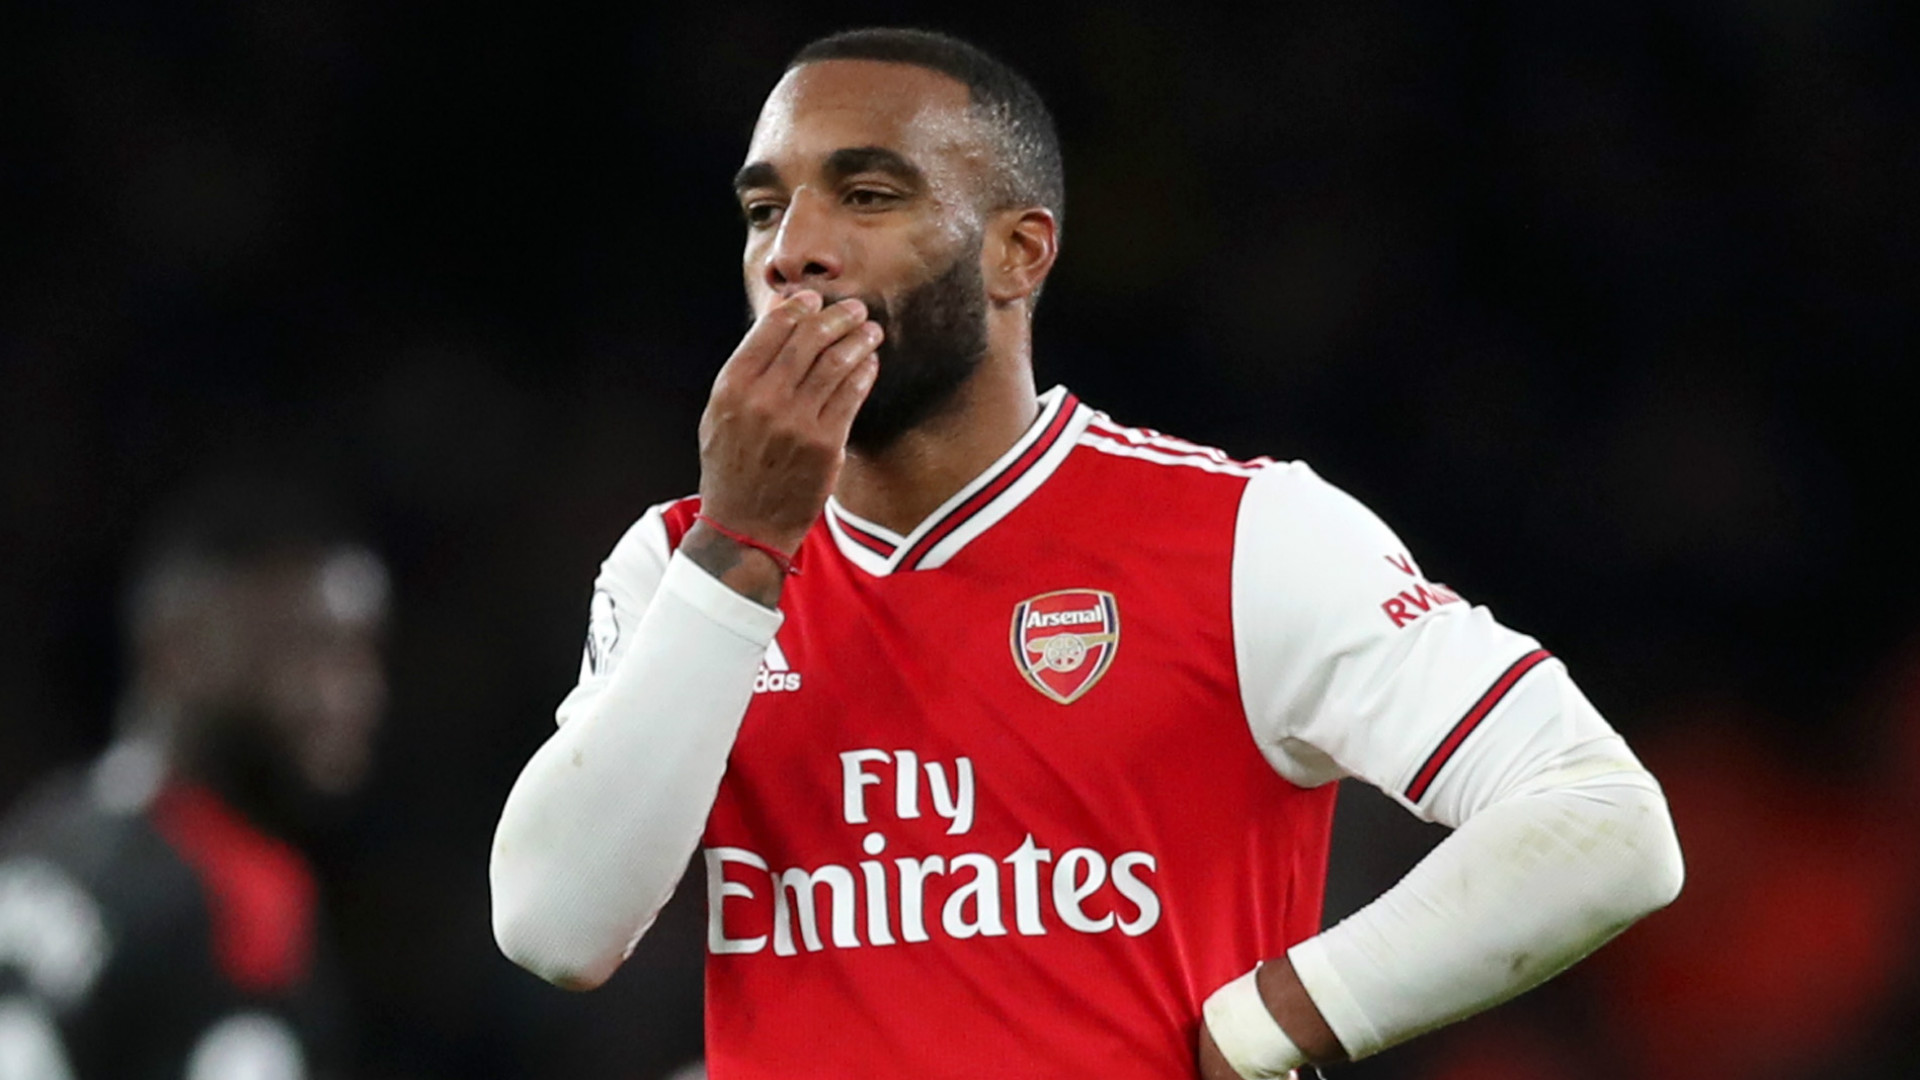 Lacazette frustrated by 'naïve' Arsenal & wants Gunners to be 'nastier'